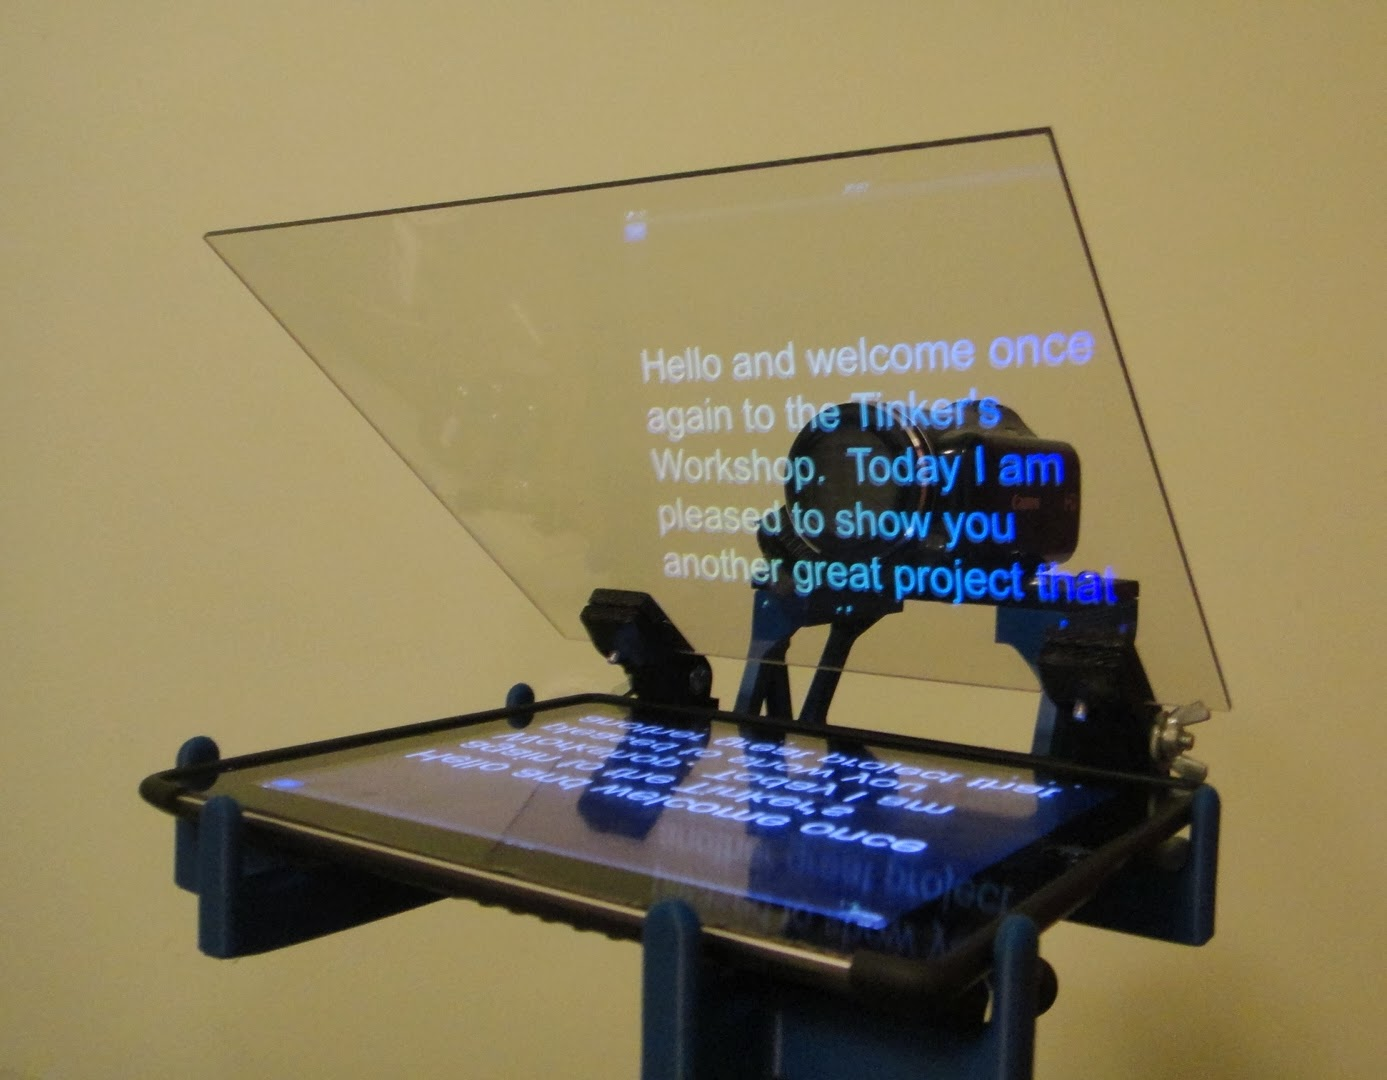 The Tinkers Workshop: 3D Printed IPad Video Teleprompter Project